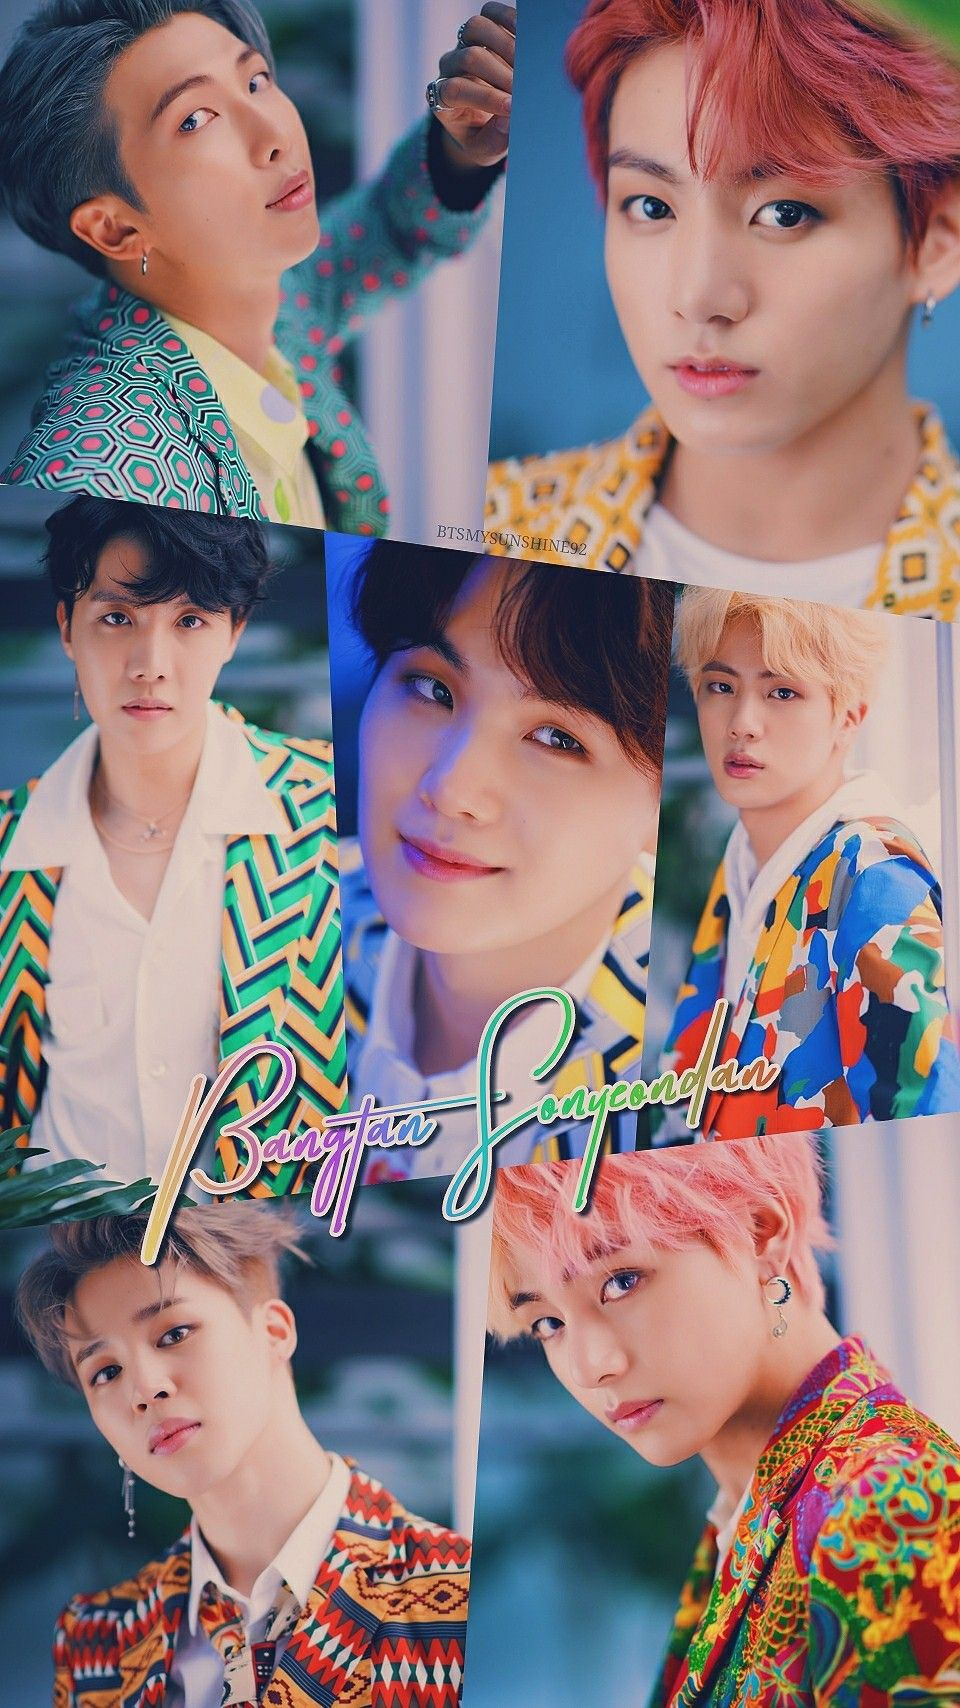 Bts Lockscreen Wallpaper Bts X Dispatch Behind The Scenes Of Idol Meninos Bts Bts Aniversarios Bts Papel De Parede